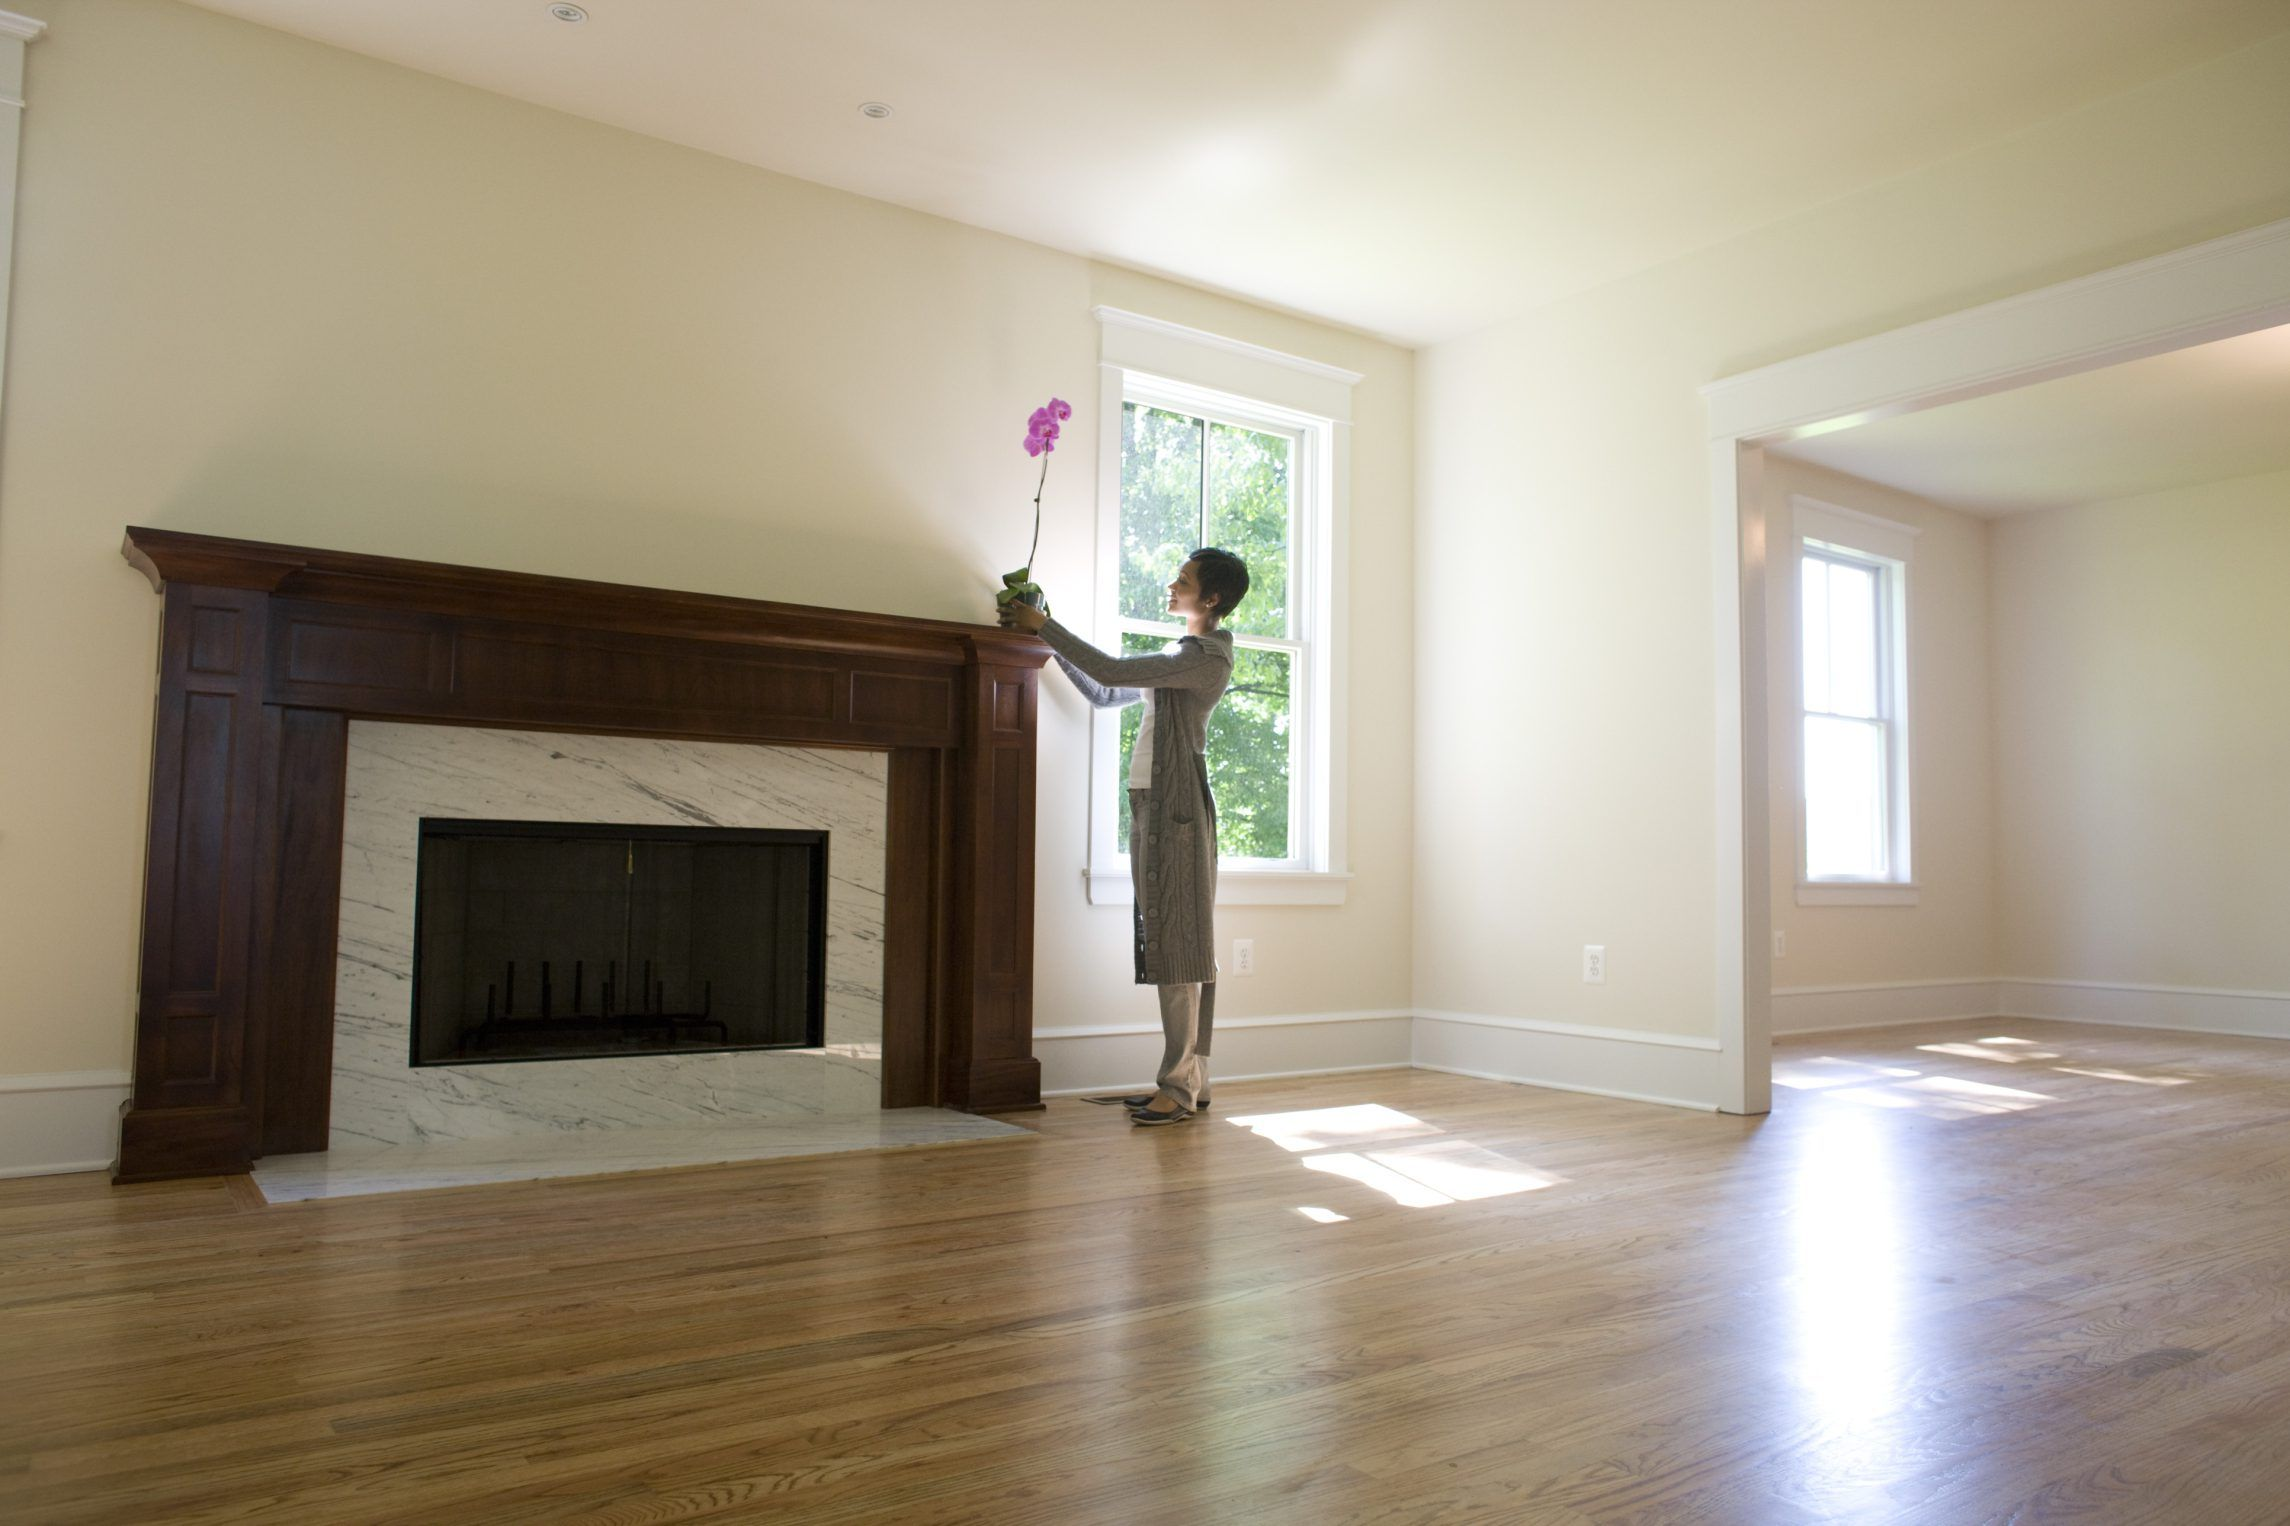 How To Get Rid Of A Musty Smell In A Gas Fireplace A Foul Odor Coming From Your Chimney Is With Images Build A Fireplace Slate Fireplace Surround Long Narrow